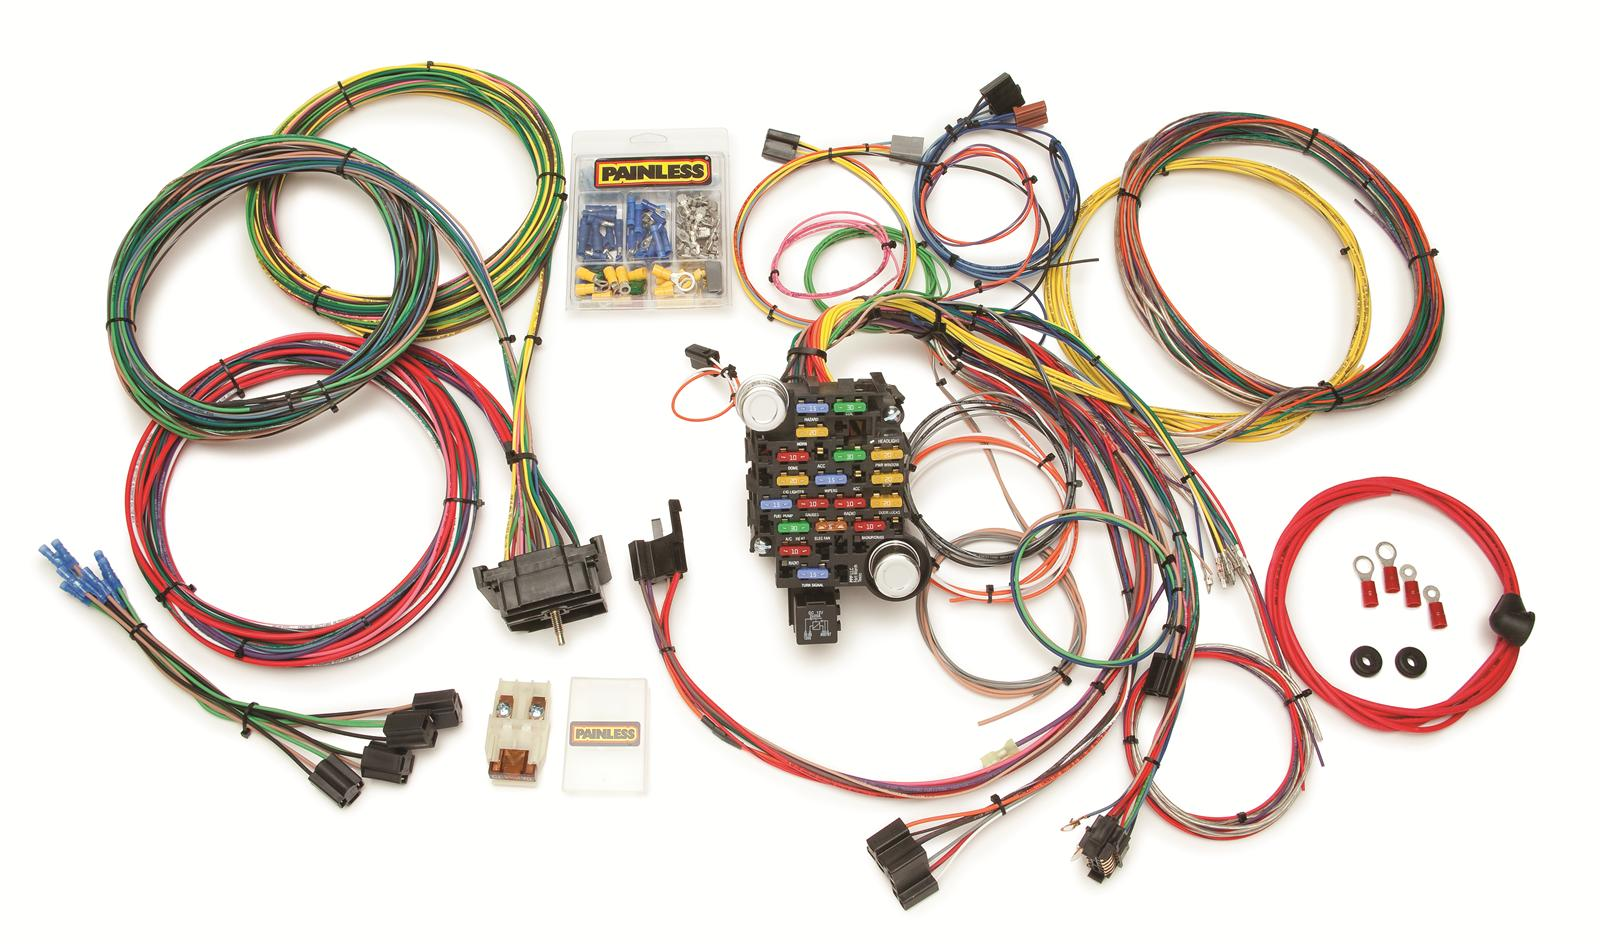 prf 10206_xl painless performance 73 87 chevy gm truck 27 circuit lsx painless 8 circuit wiring harness at bayanpartner.co